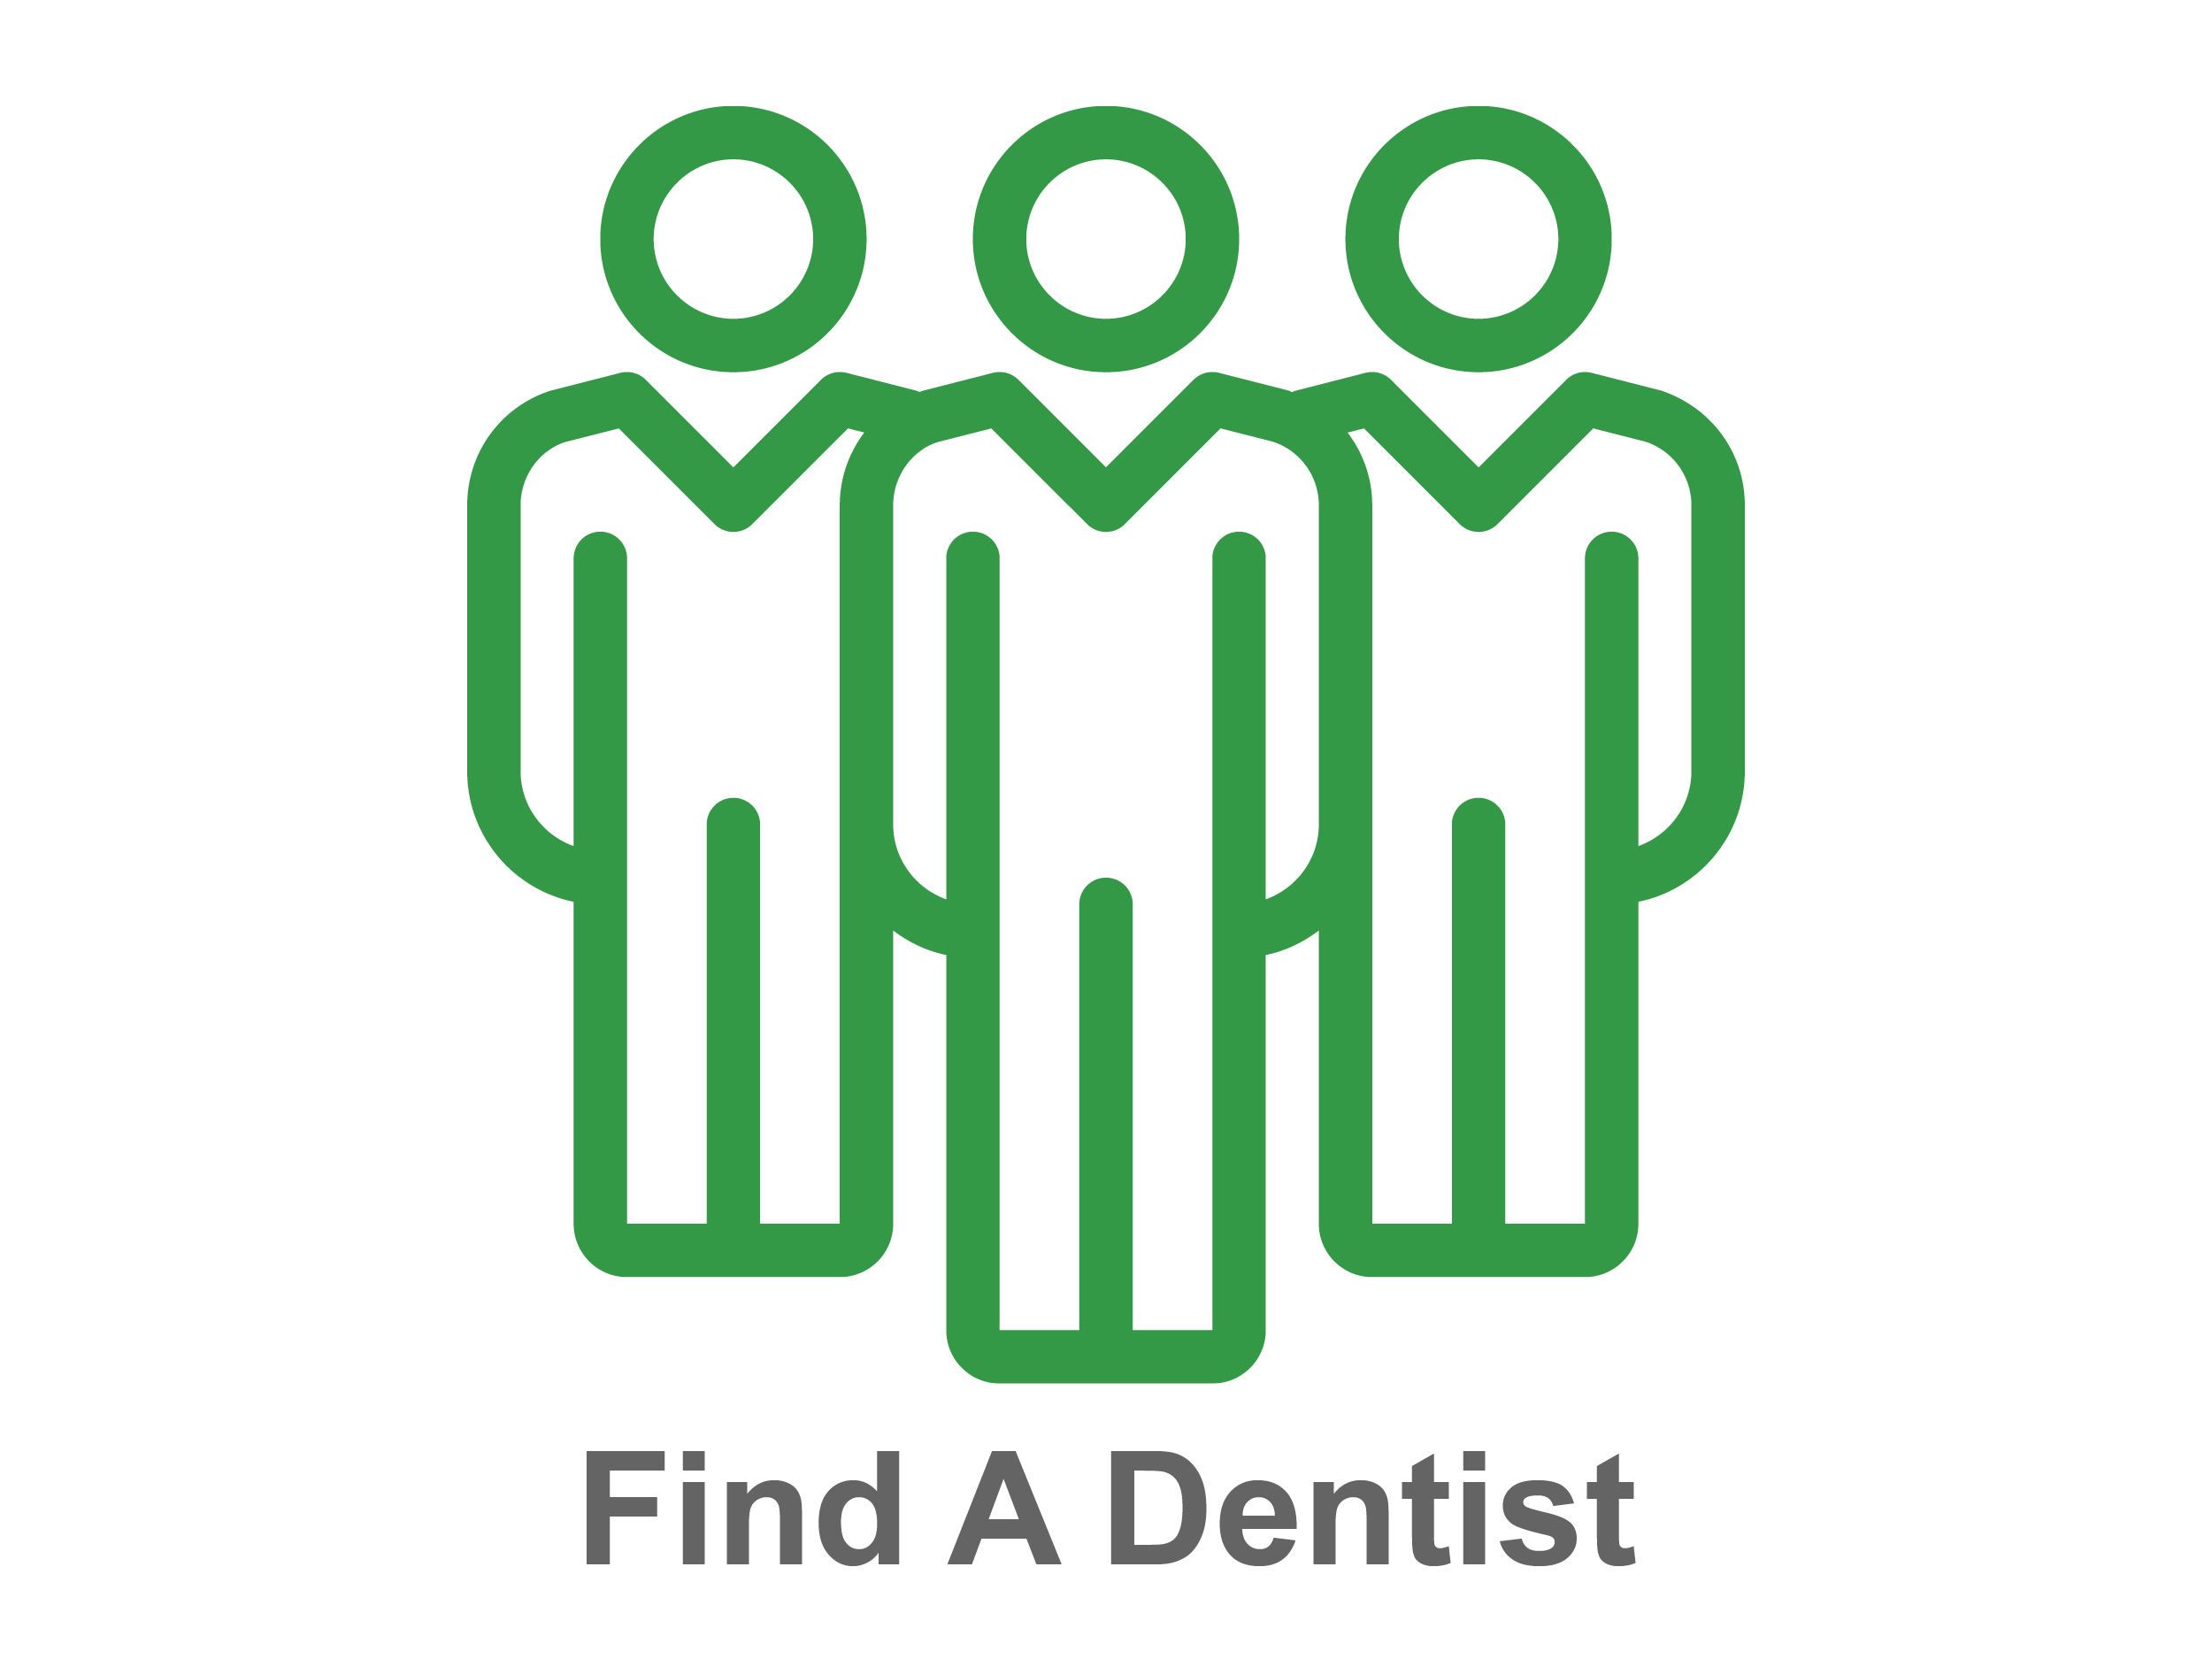 Find A Dentist Icon